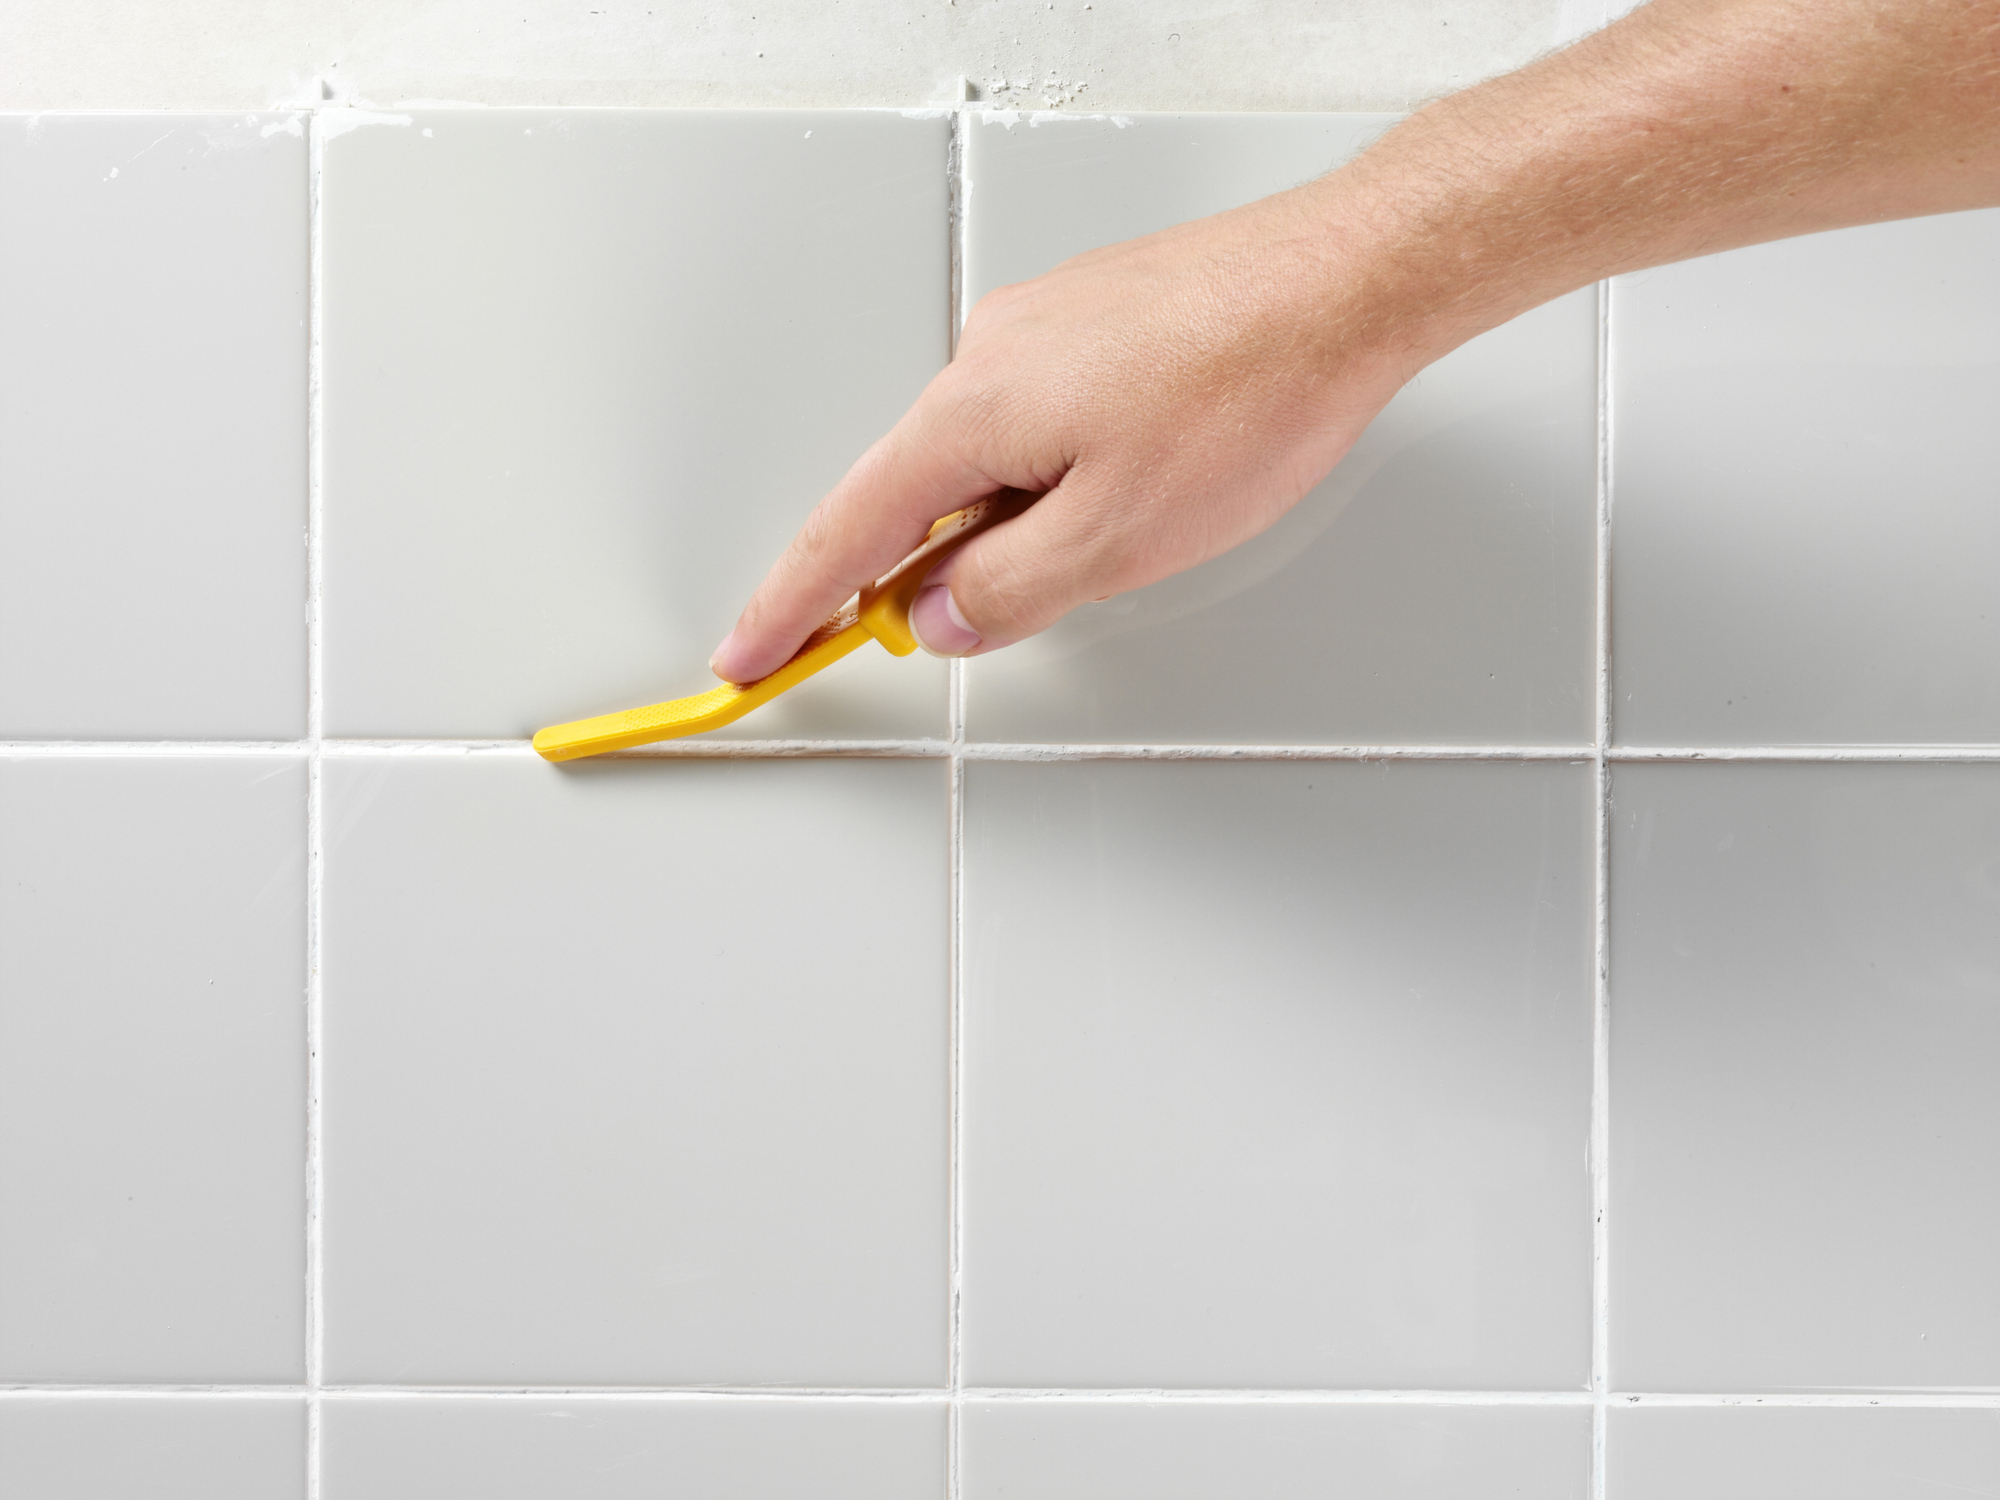 Tidying up with a grout finishing tool